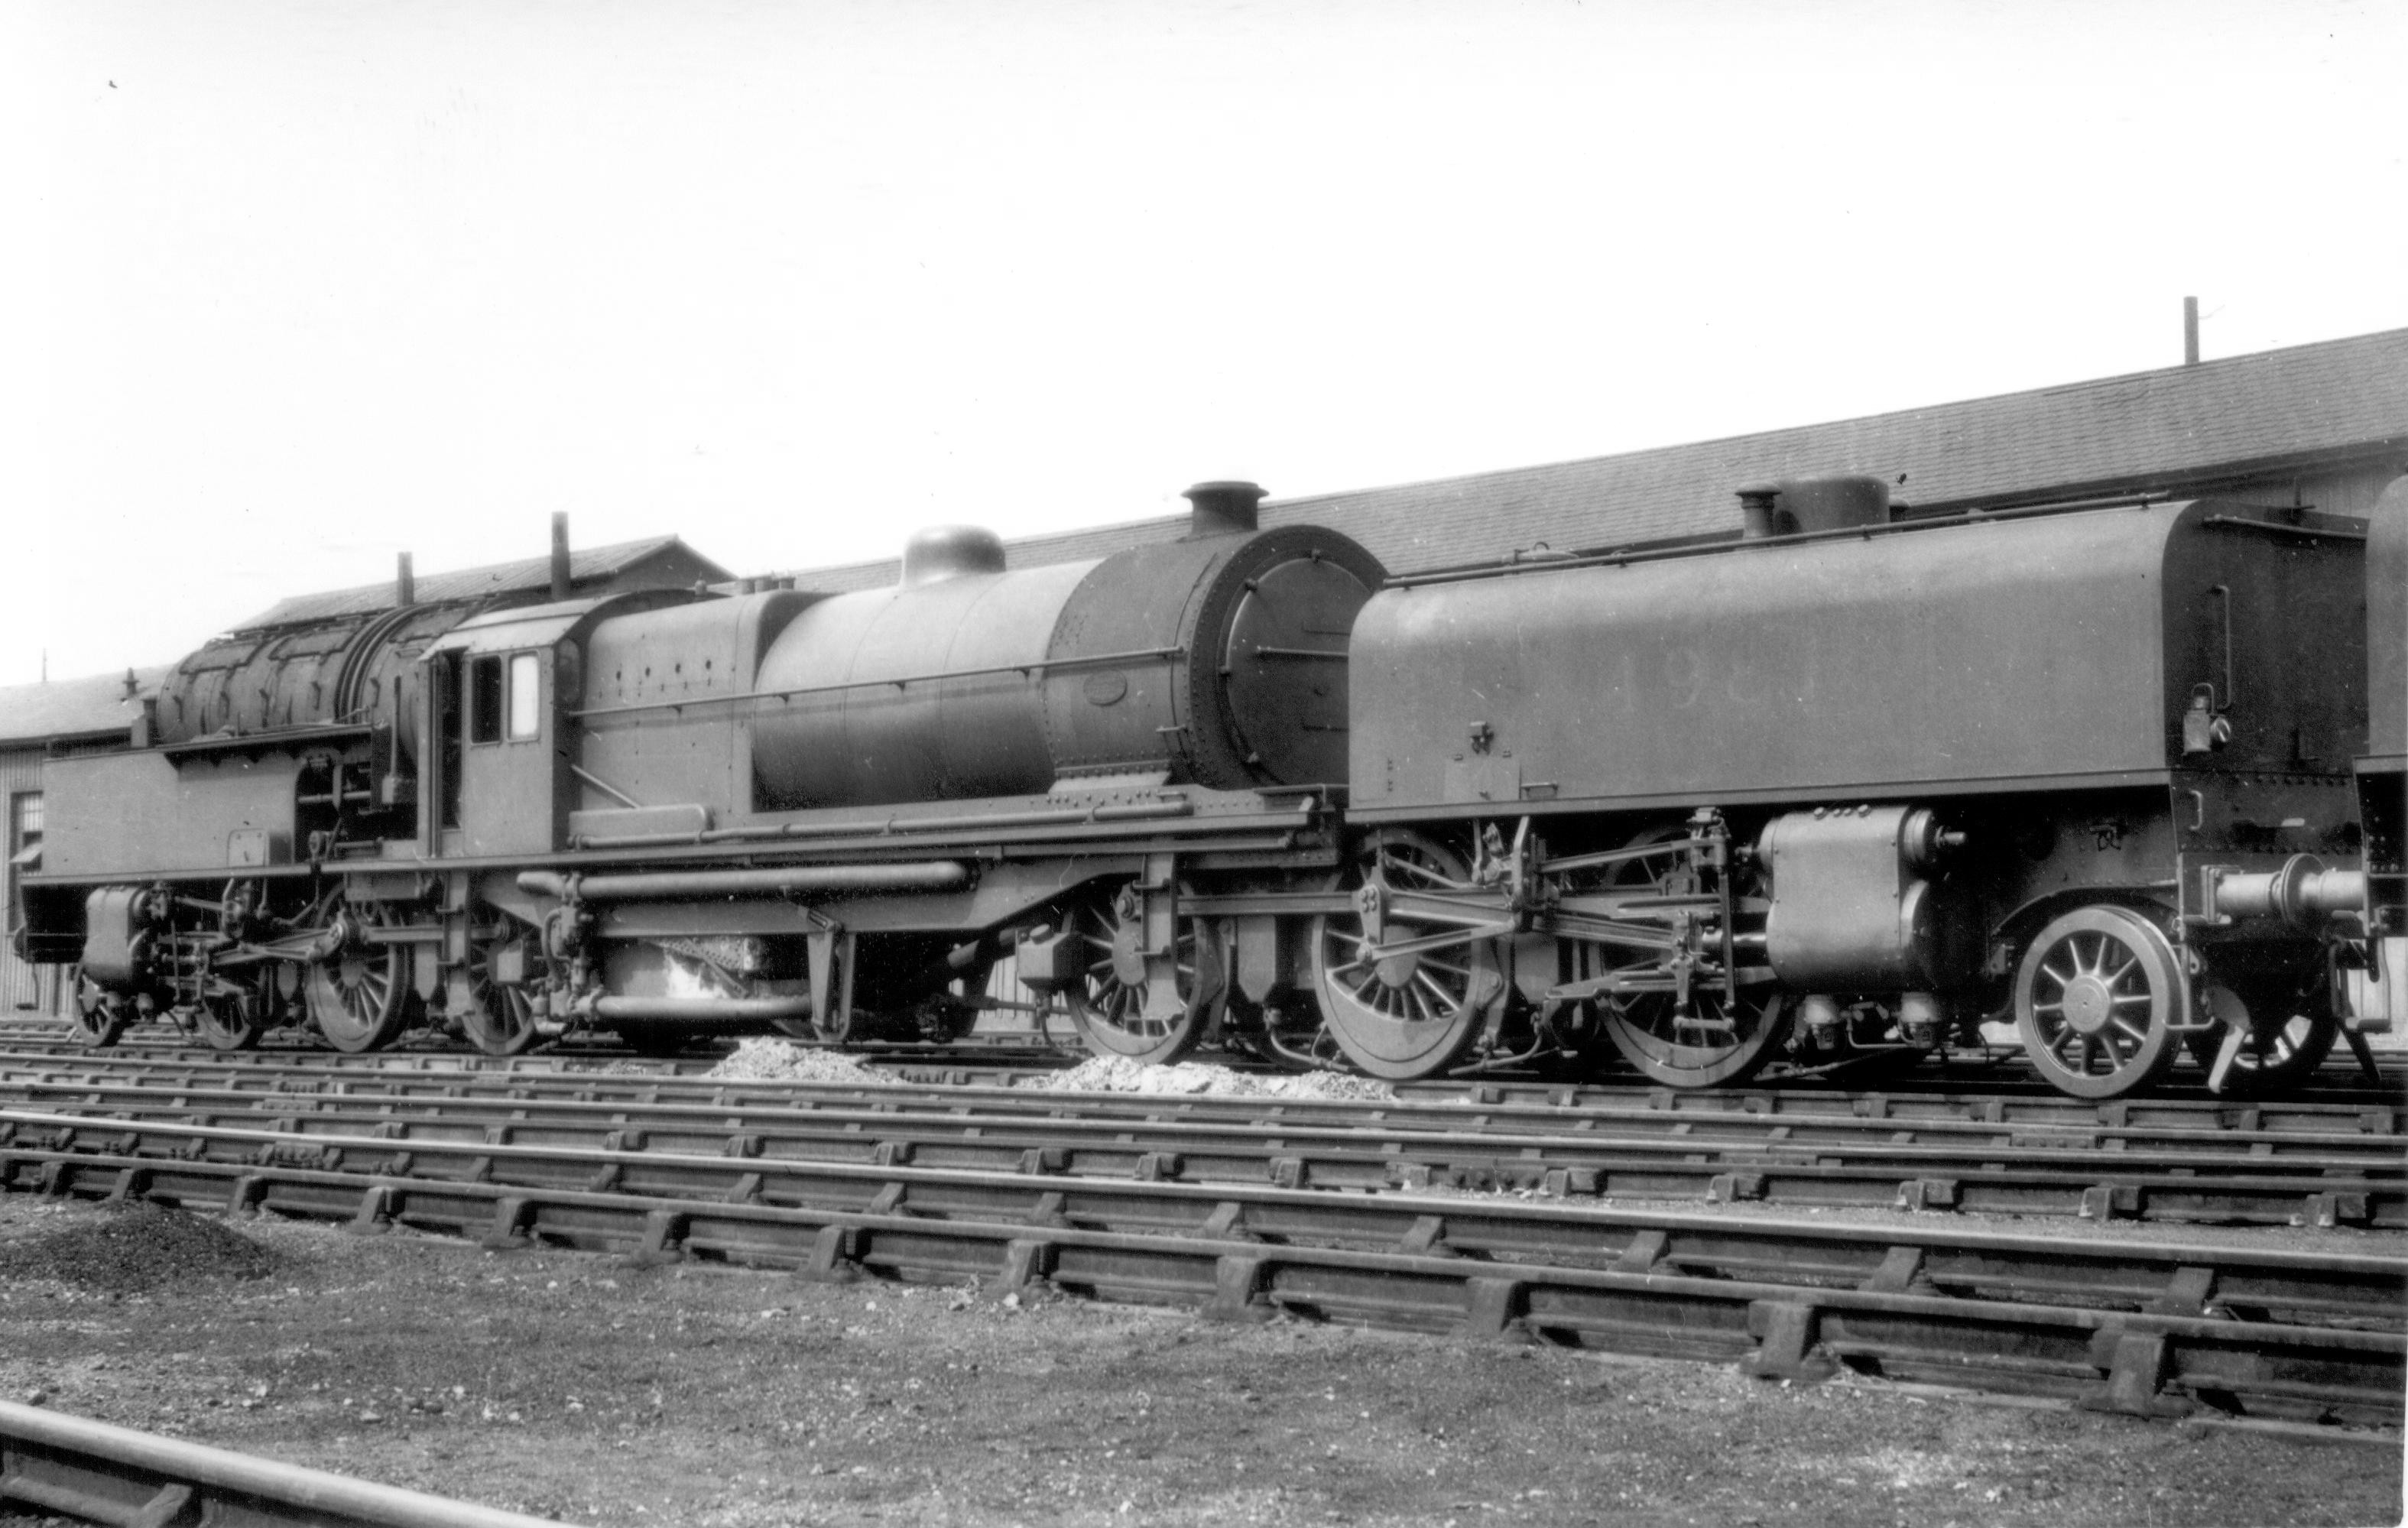 File:LMS Garratt 498x.jpg - Wikimedia Commons